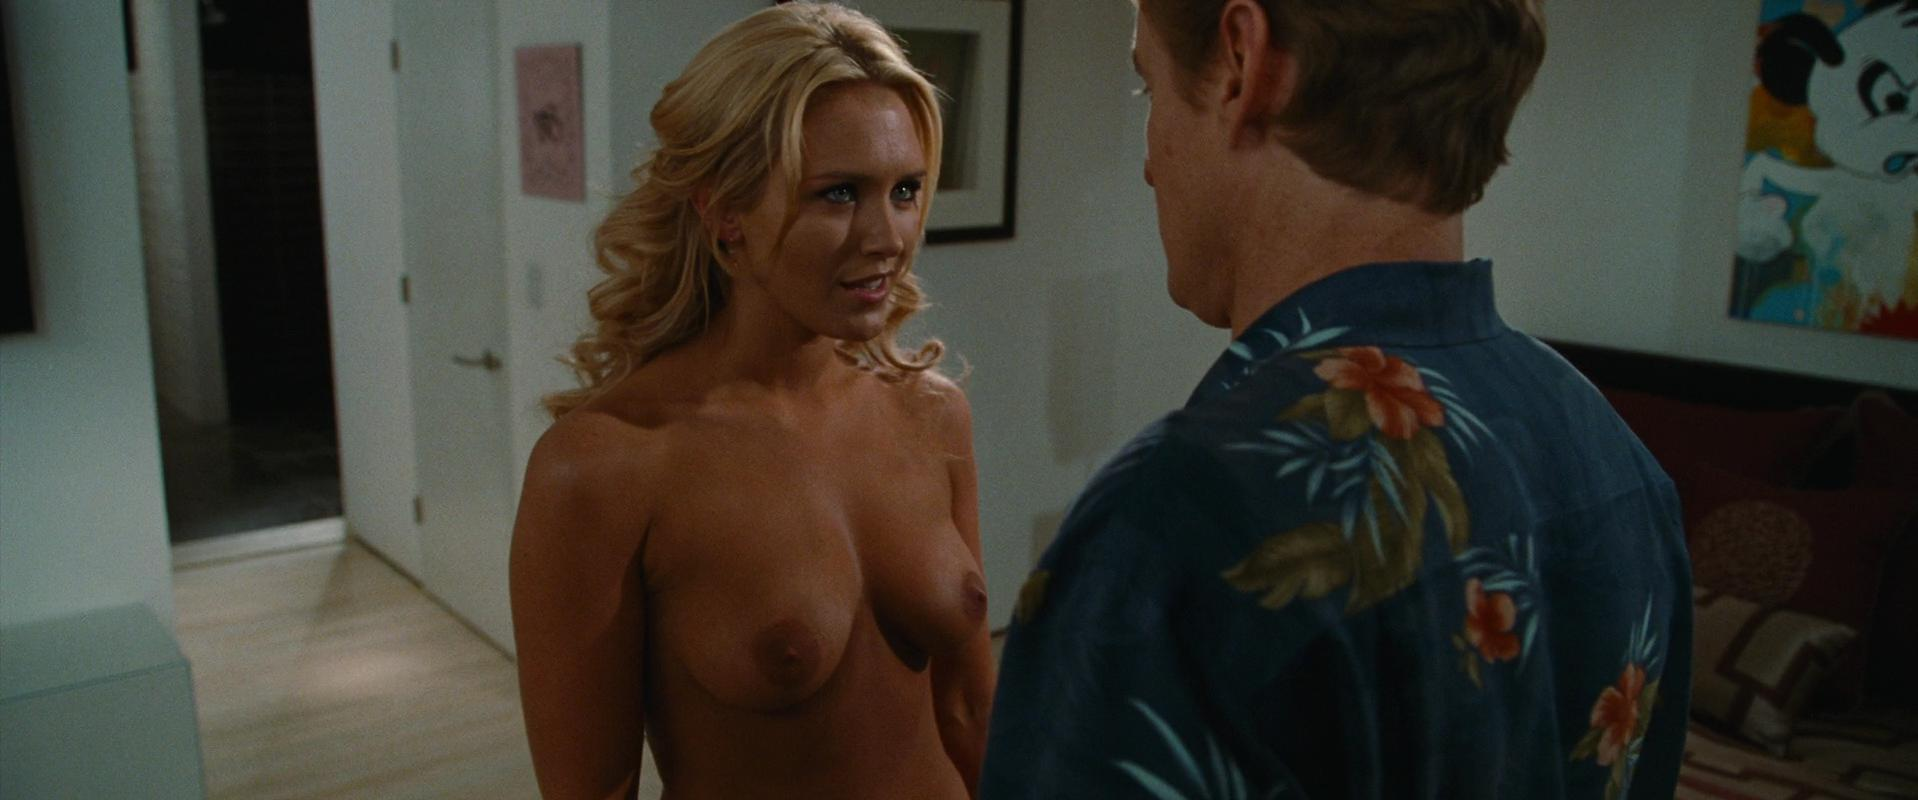 Nicky Whelan nude - Hall Pass (2011)